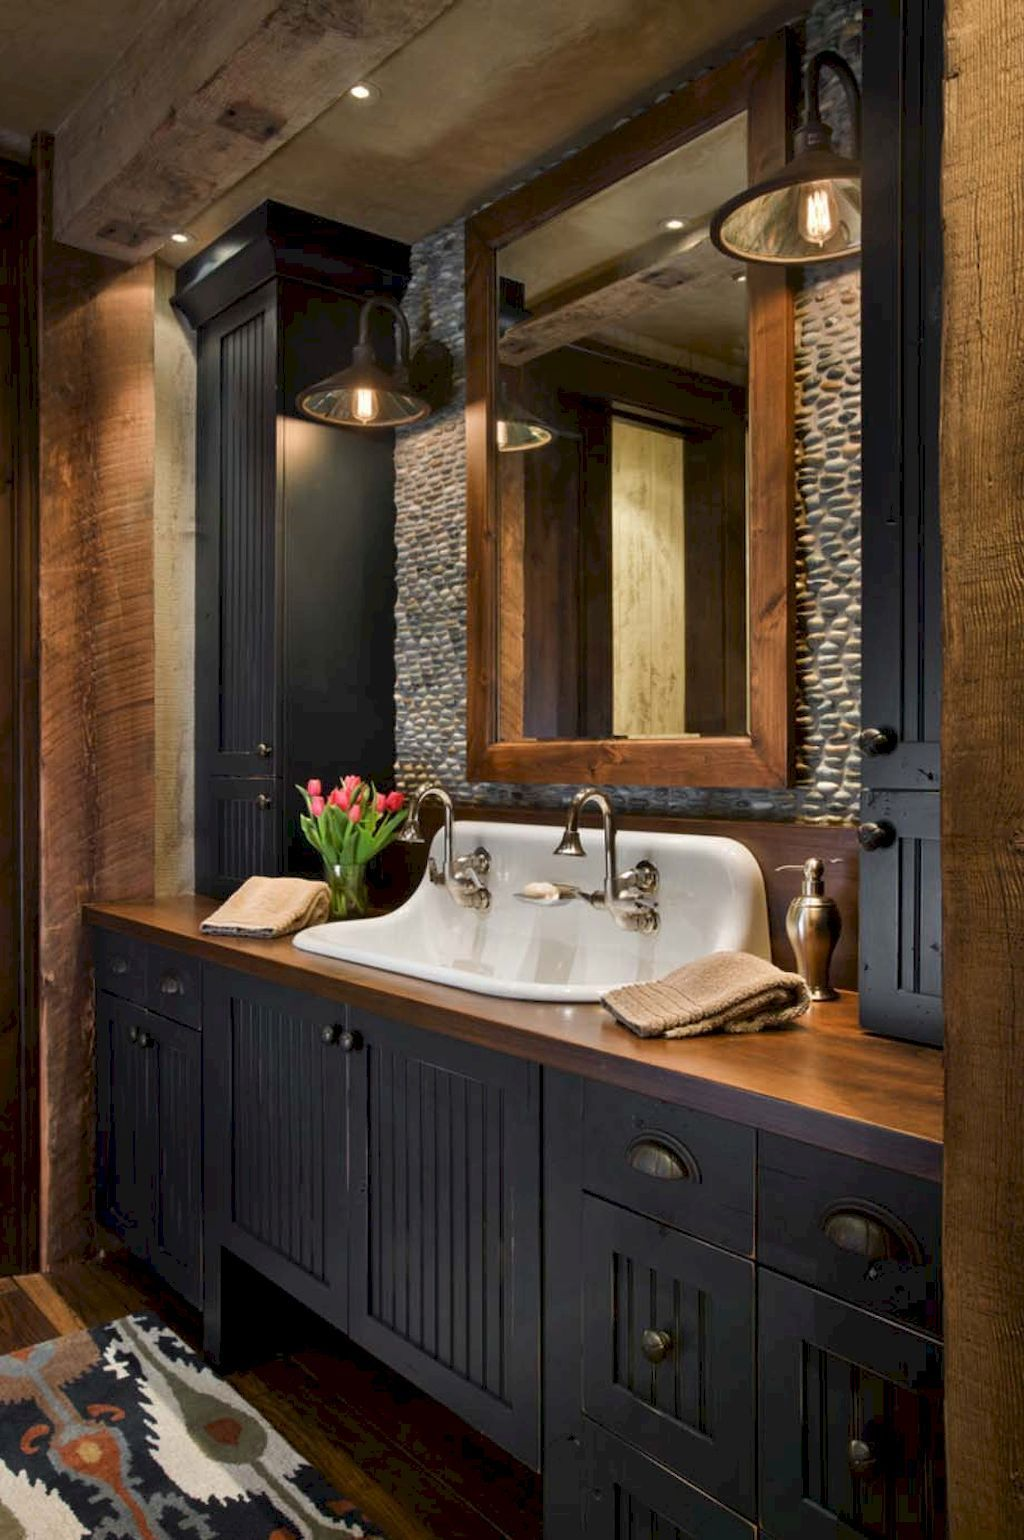 40 homely rustic bathroom ideas to warm you up this winter